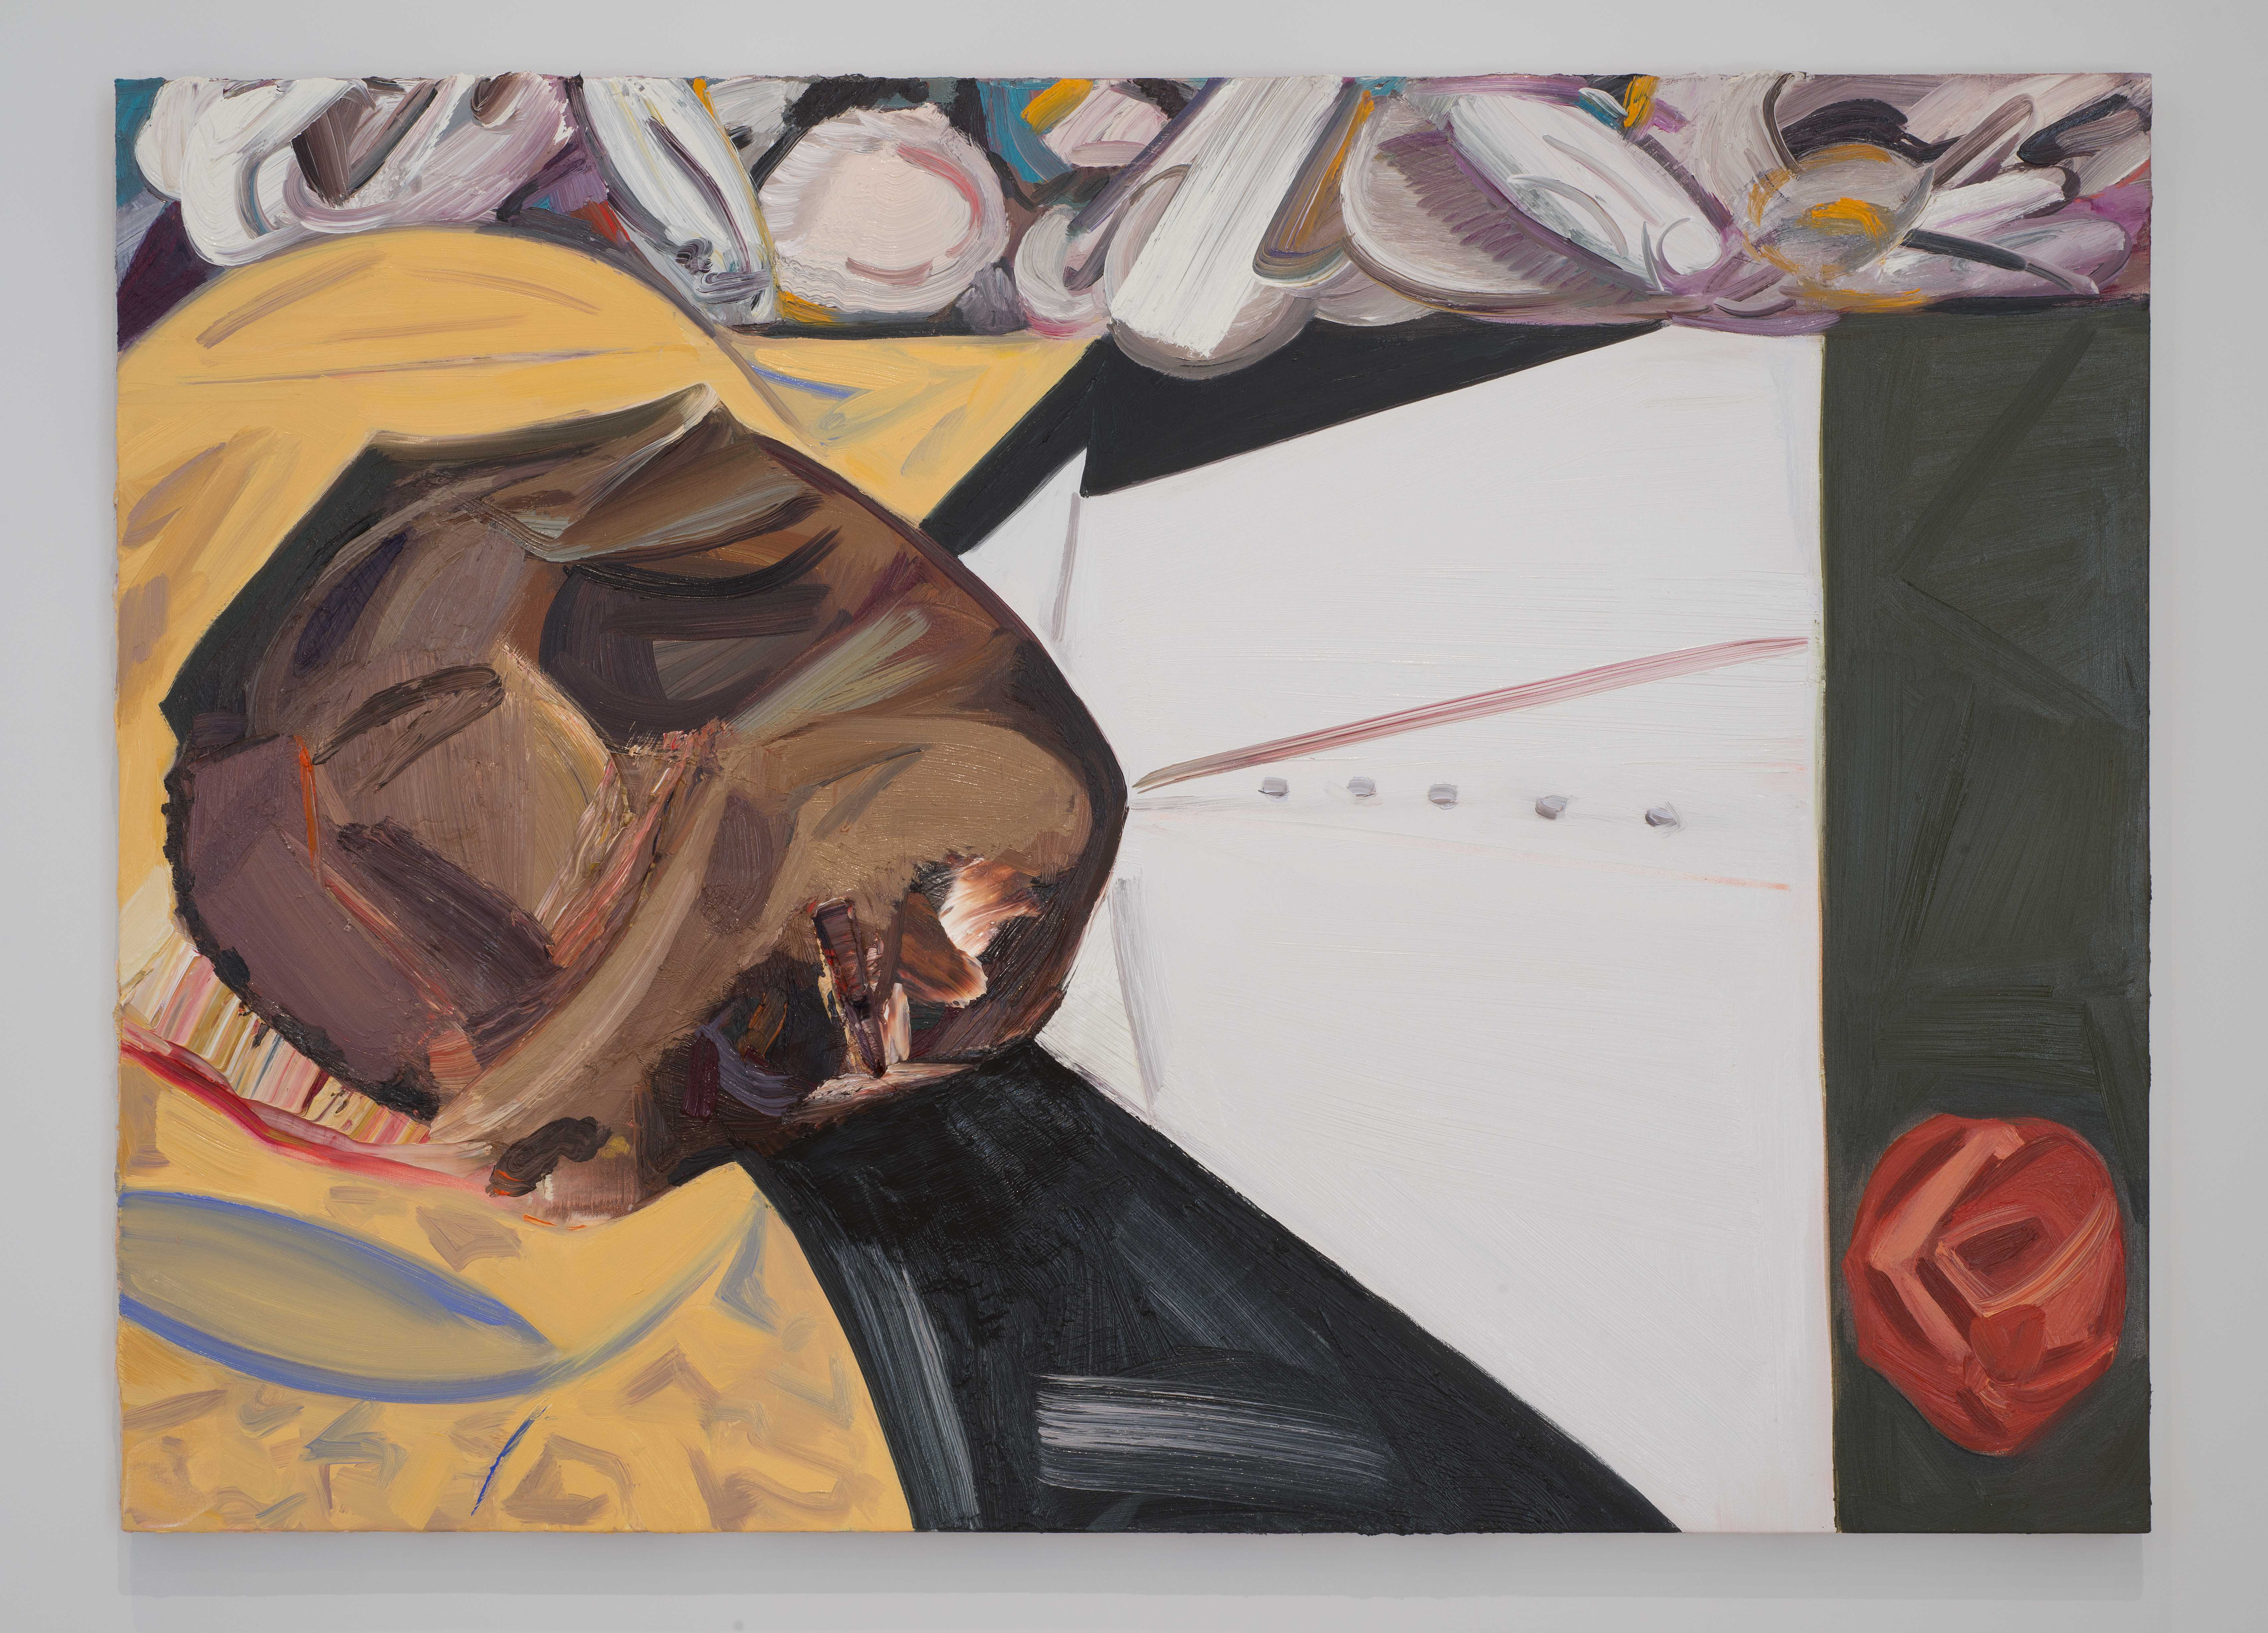 Angry Painter 2016 dana schutz responds to outcry over her controversial emmett